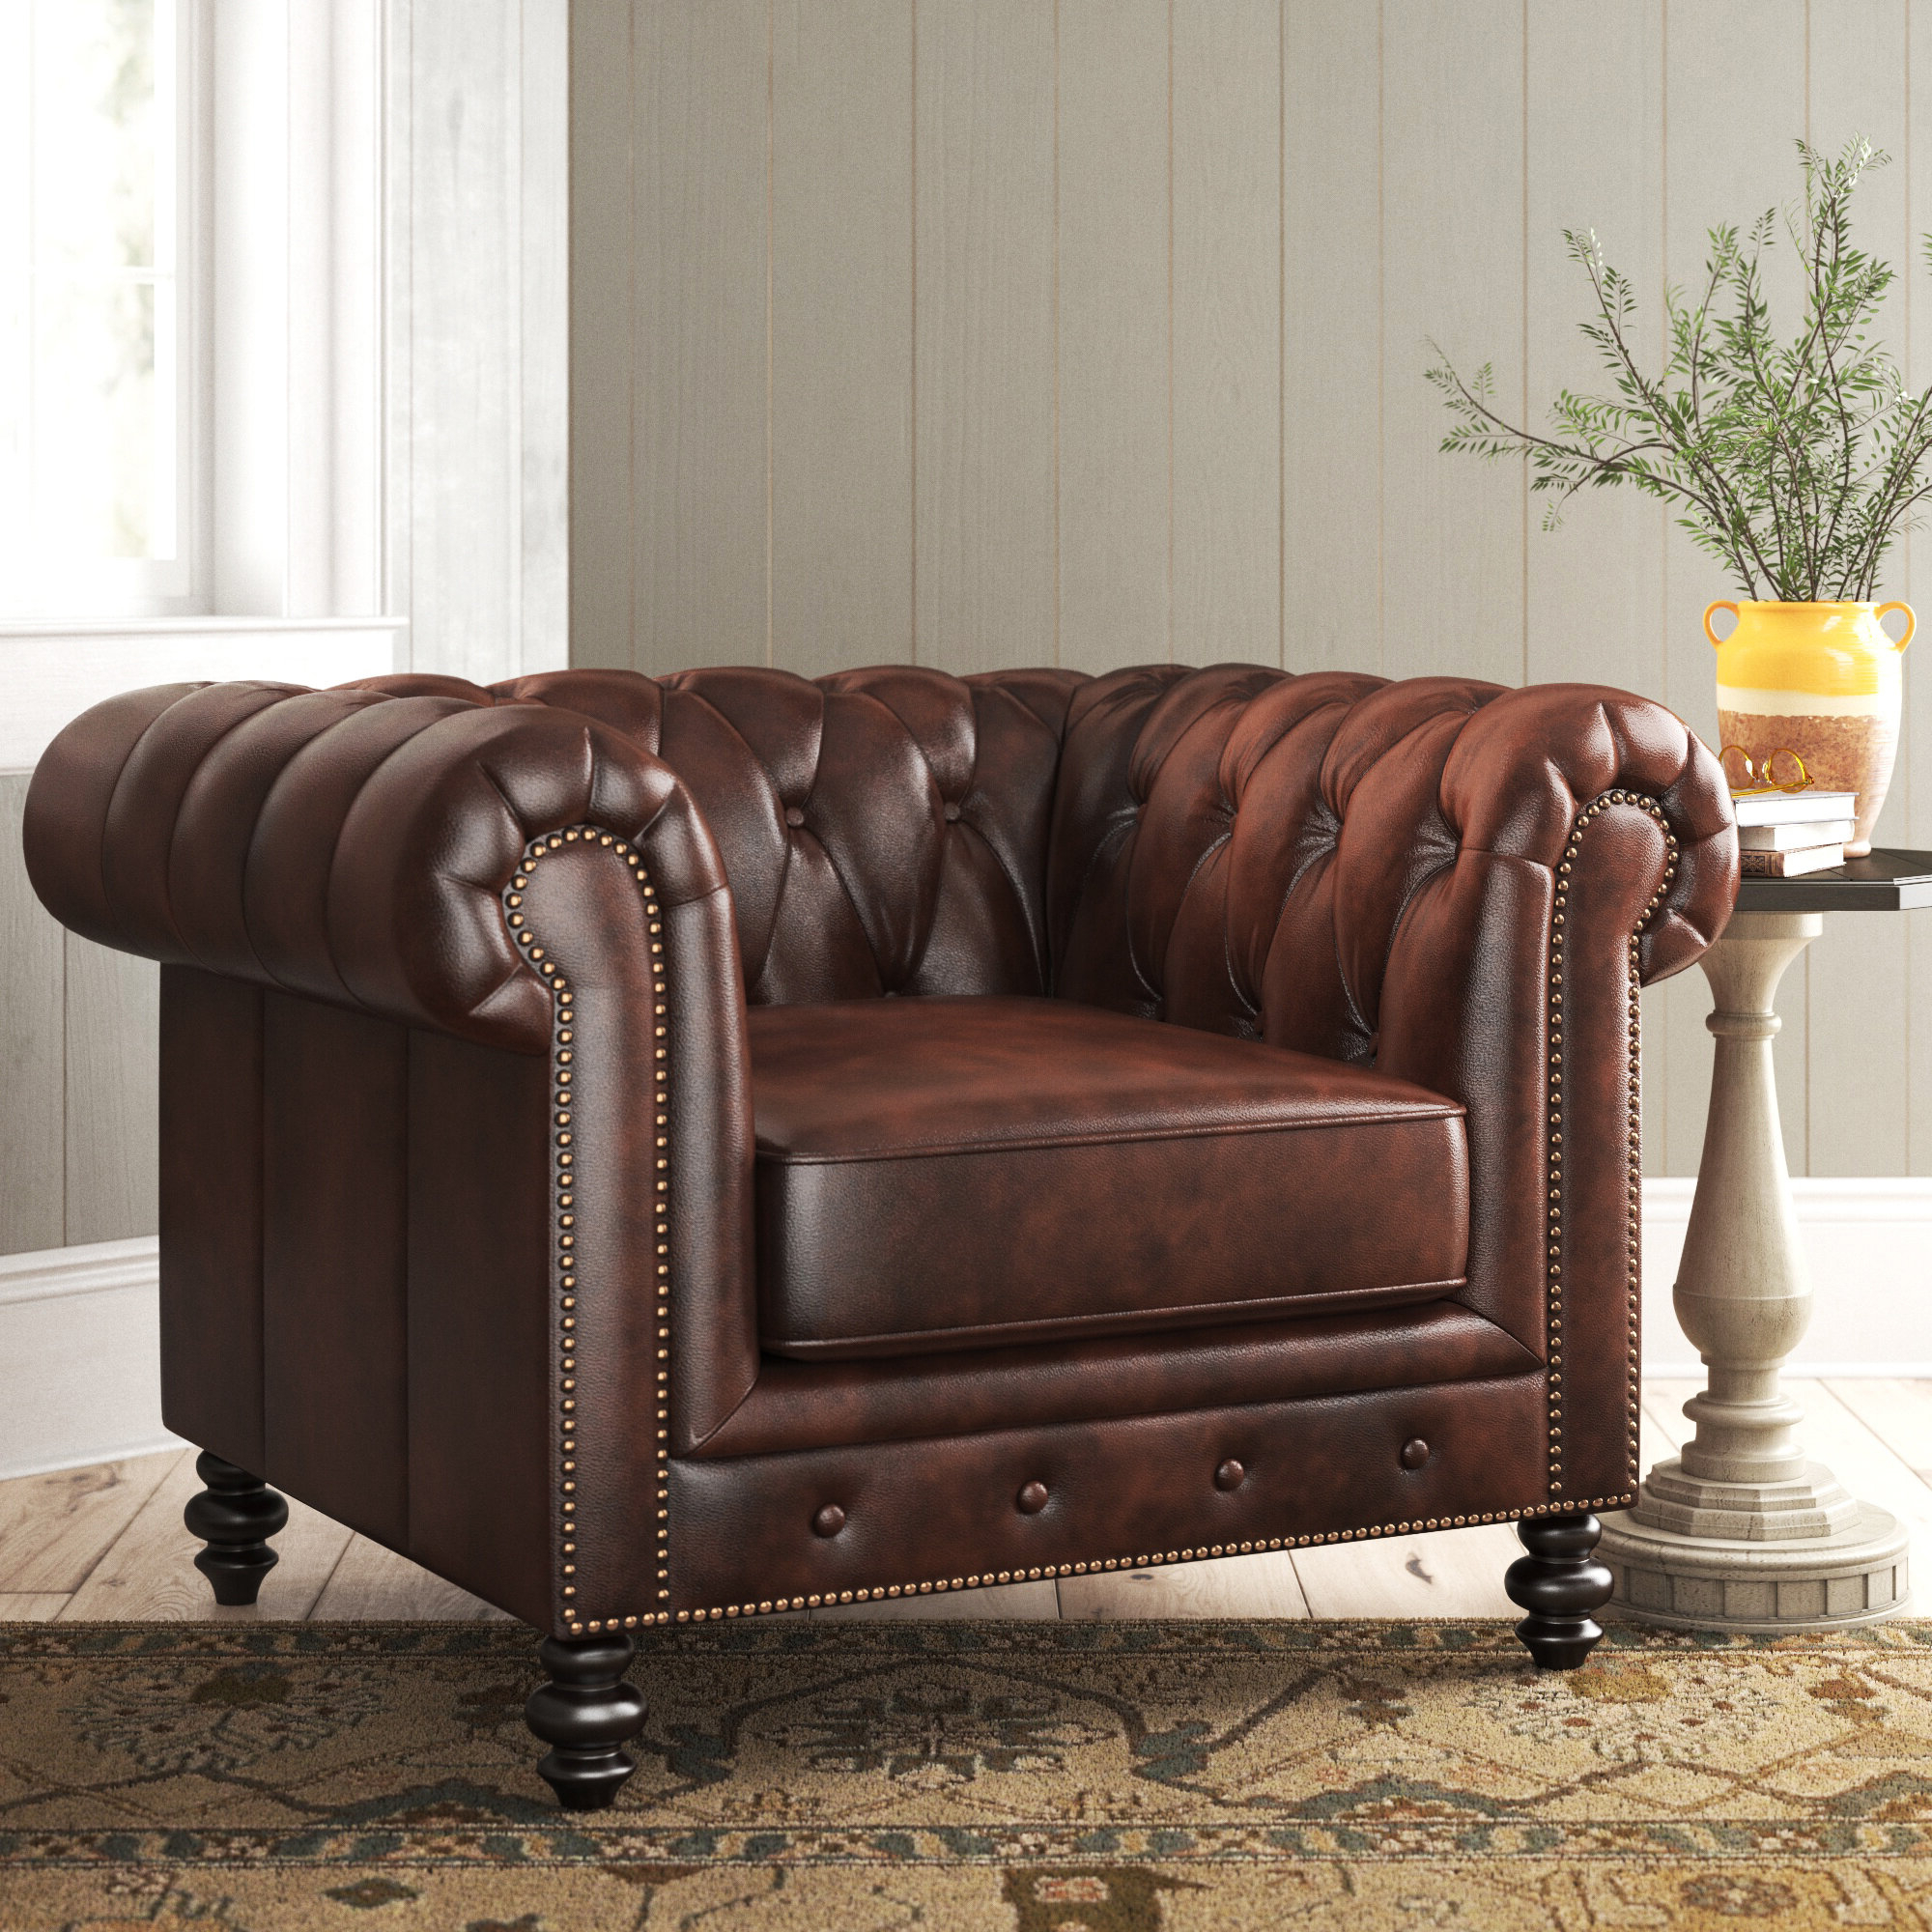 """Sheldon Tufted Top Grain Leather Club Chairs Regarding Most Current Eufaula 44"""" W Tufted Top Grain Leather Chesterfield Chair (View 3 of 20)"""